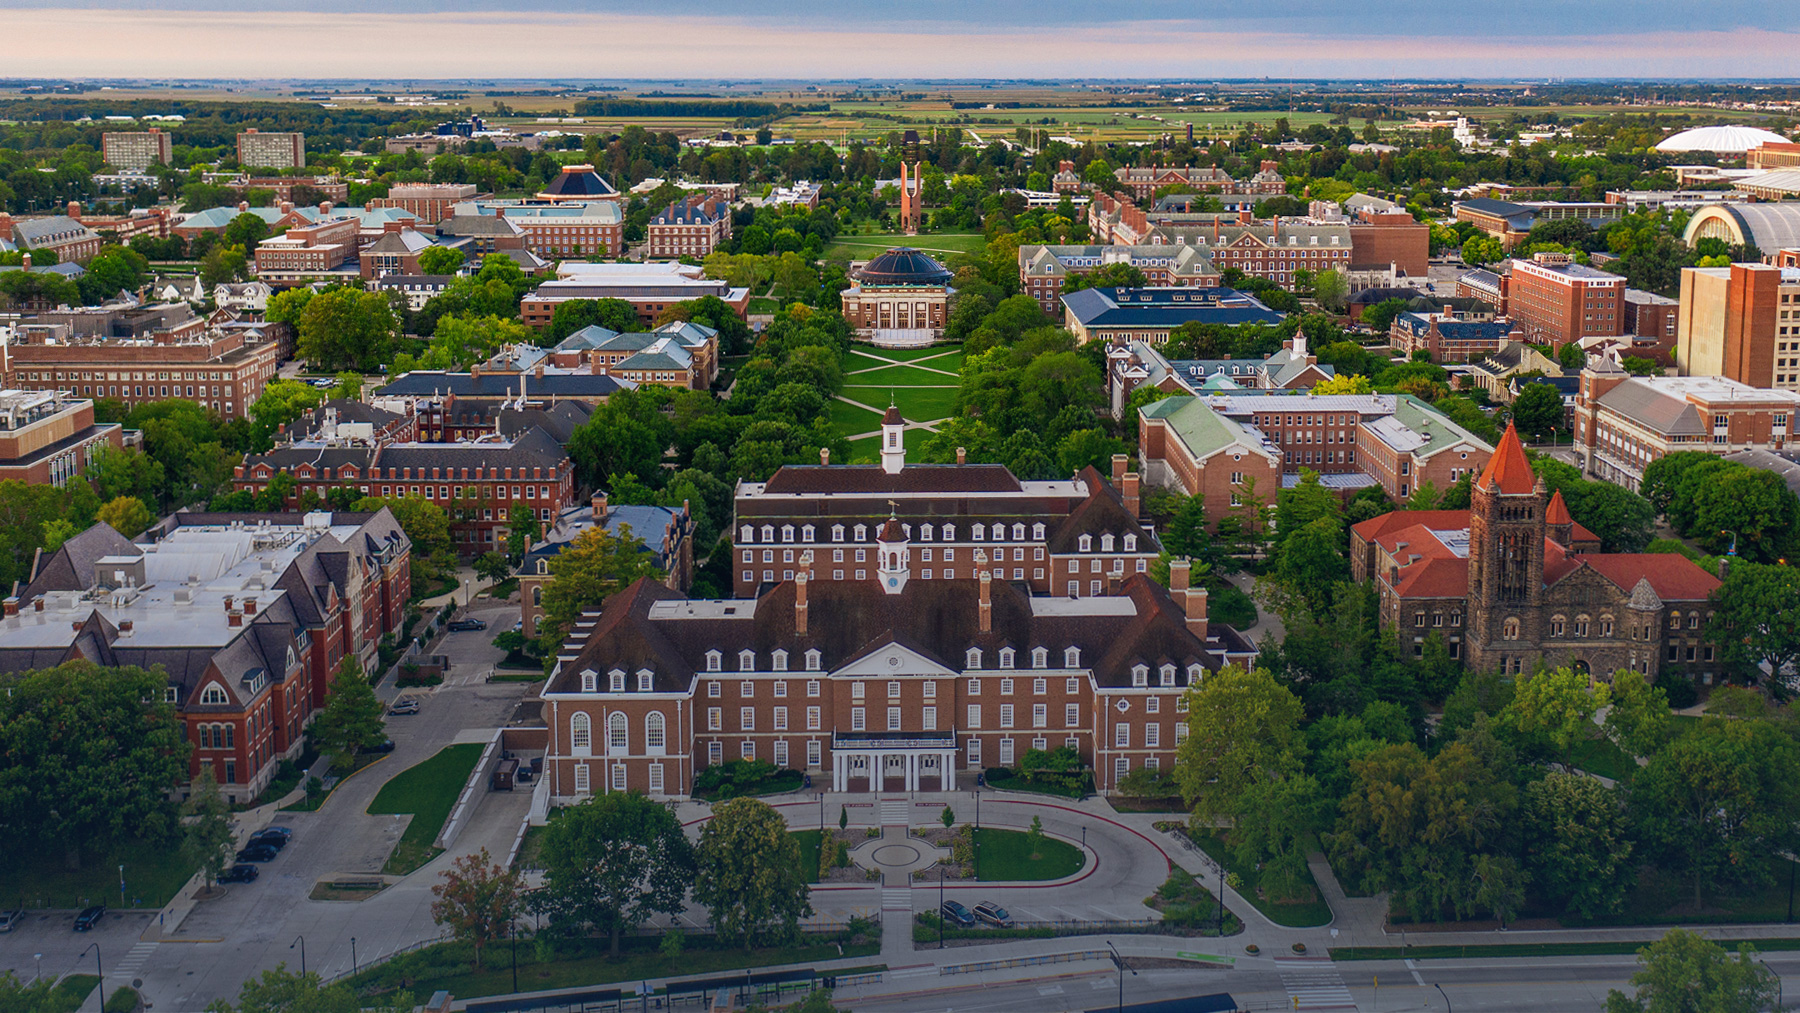 aerial view of the Main Quad looking south